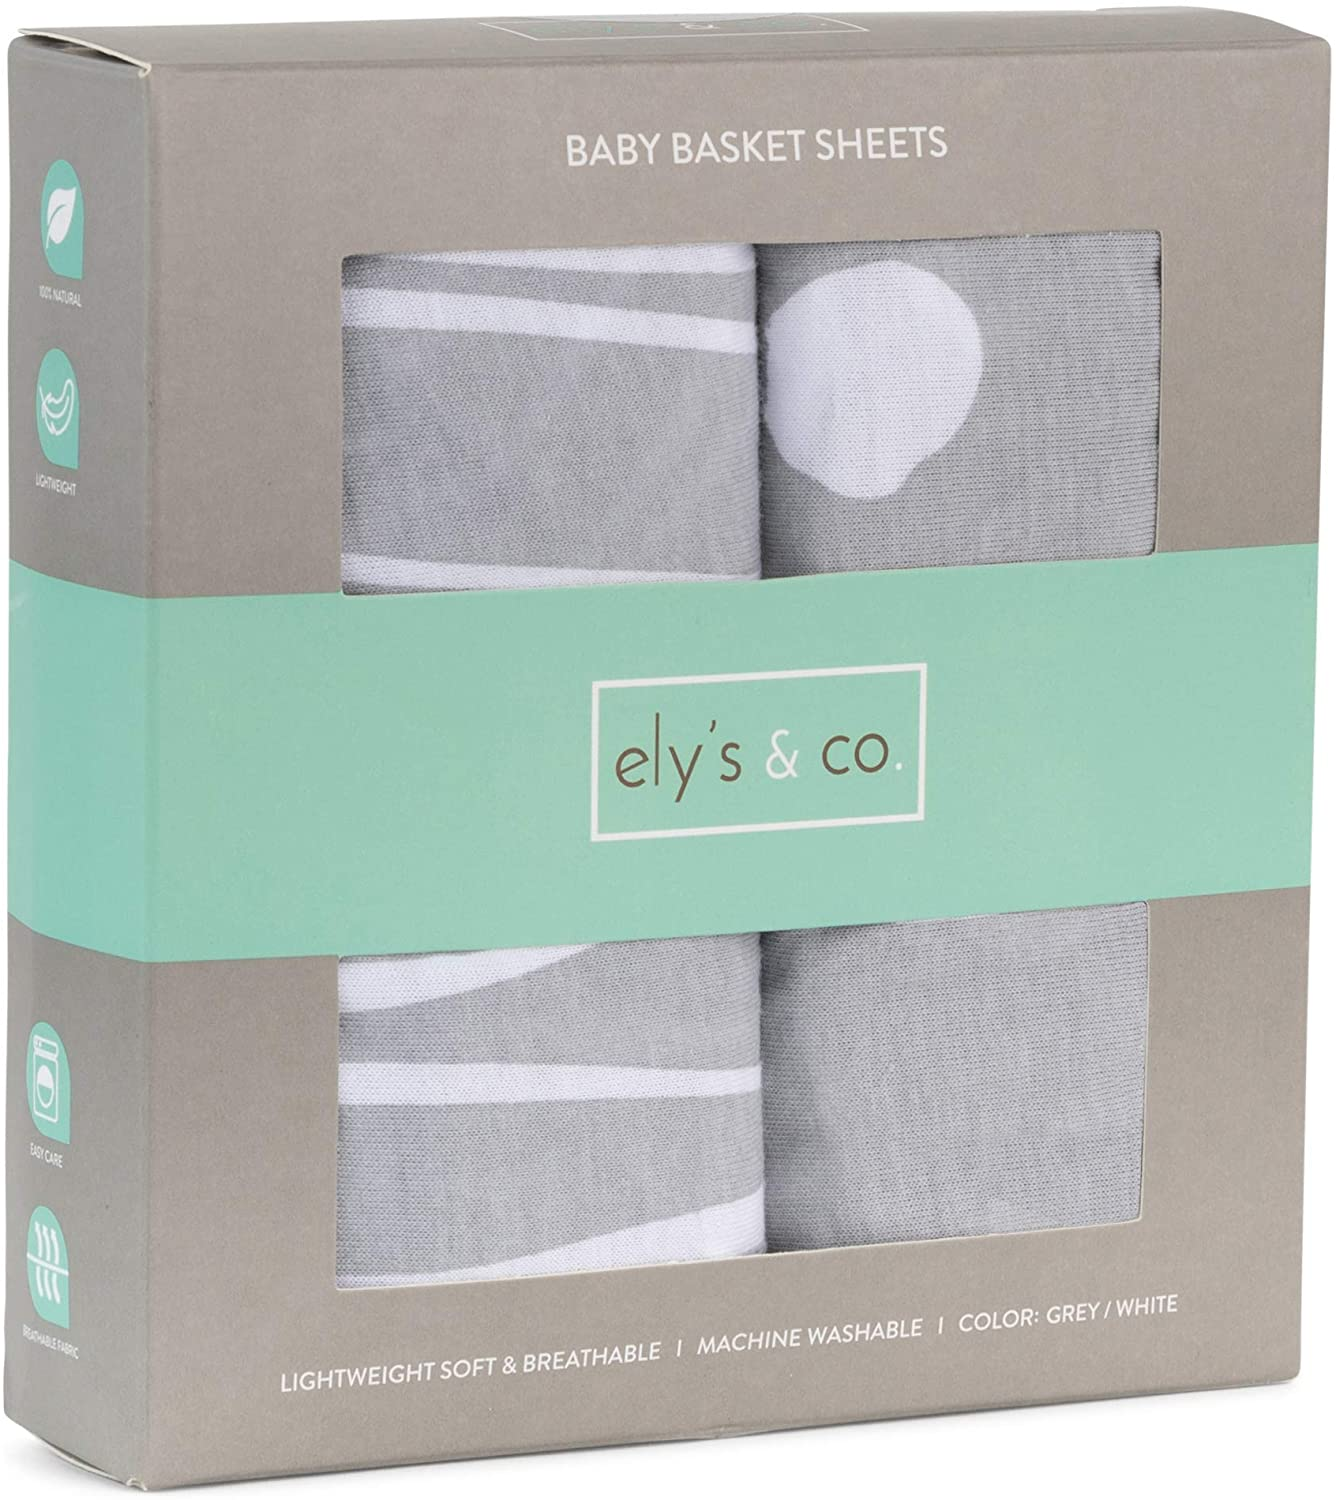 Ely's & Co. Baby Basket Sheet 2-Pack - 100% Jersey Knit Cotton for Baby Boy or Baby Girl (Grey Abstract Polka Dots and Grey Abstract Stripes)